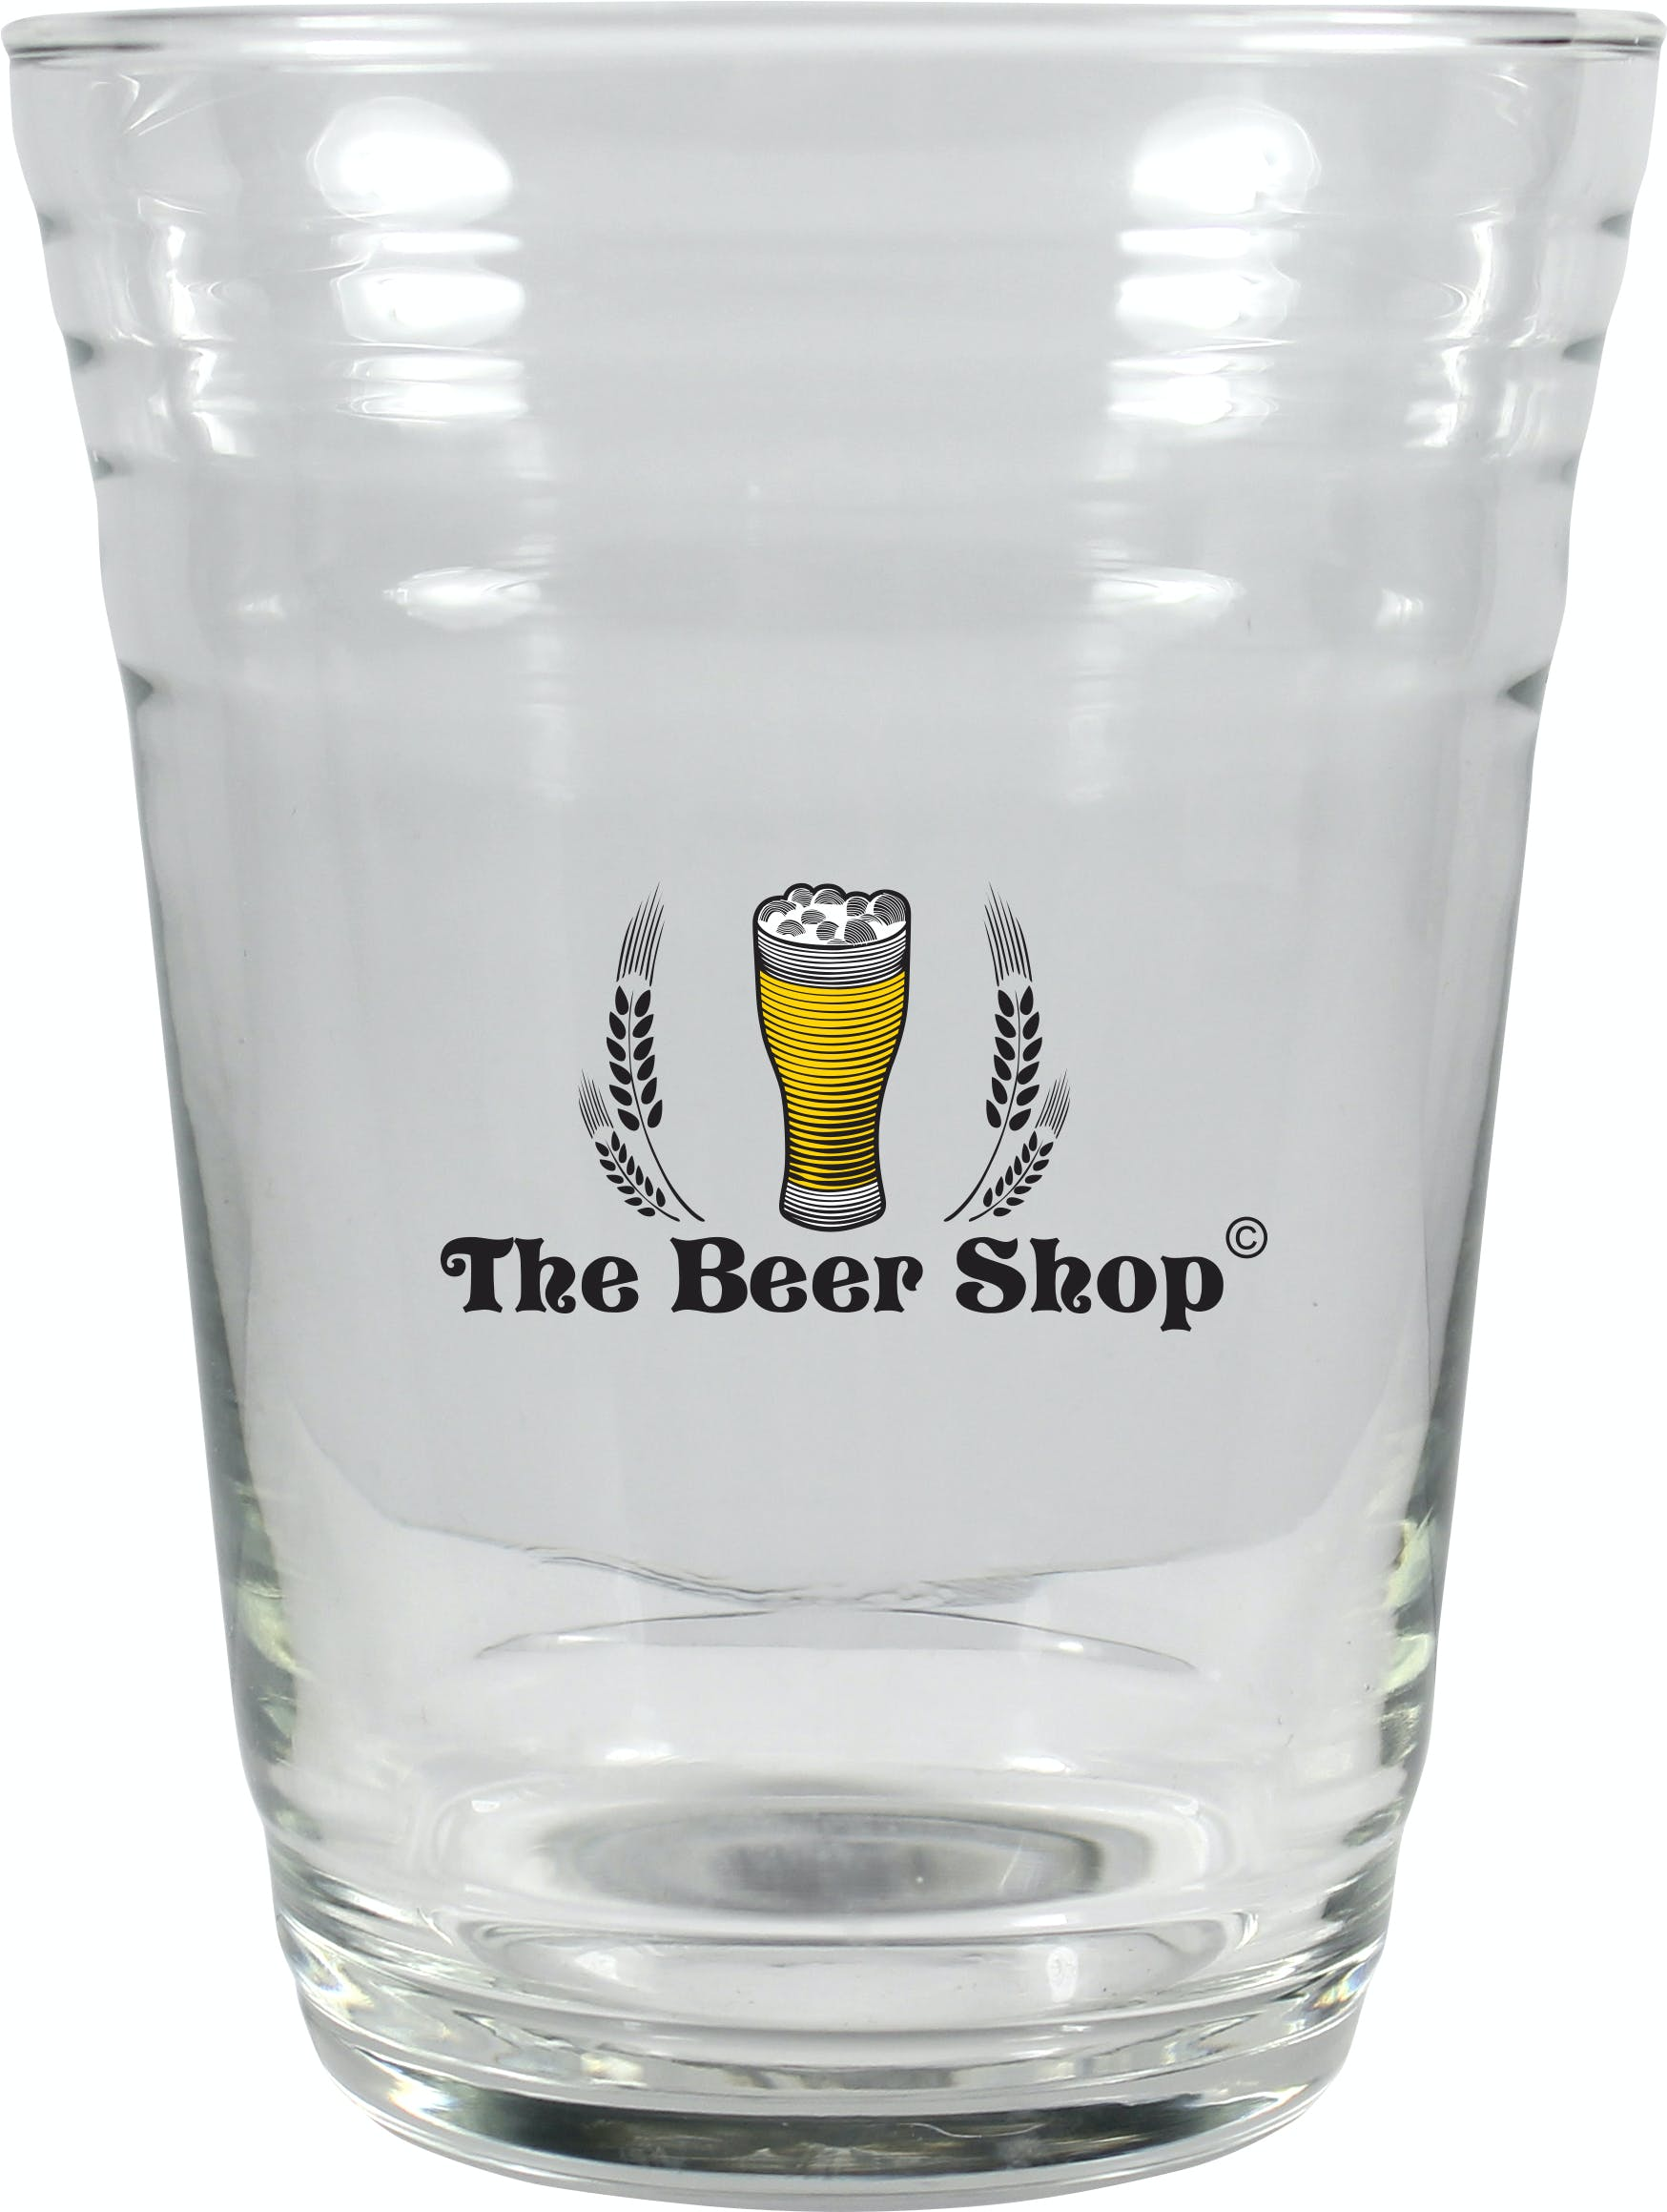 16 oz Glass Party Cup Beer glass sold by Prestige Glassware